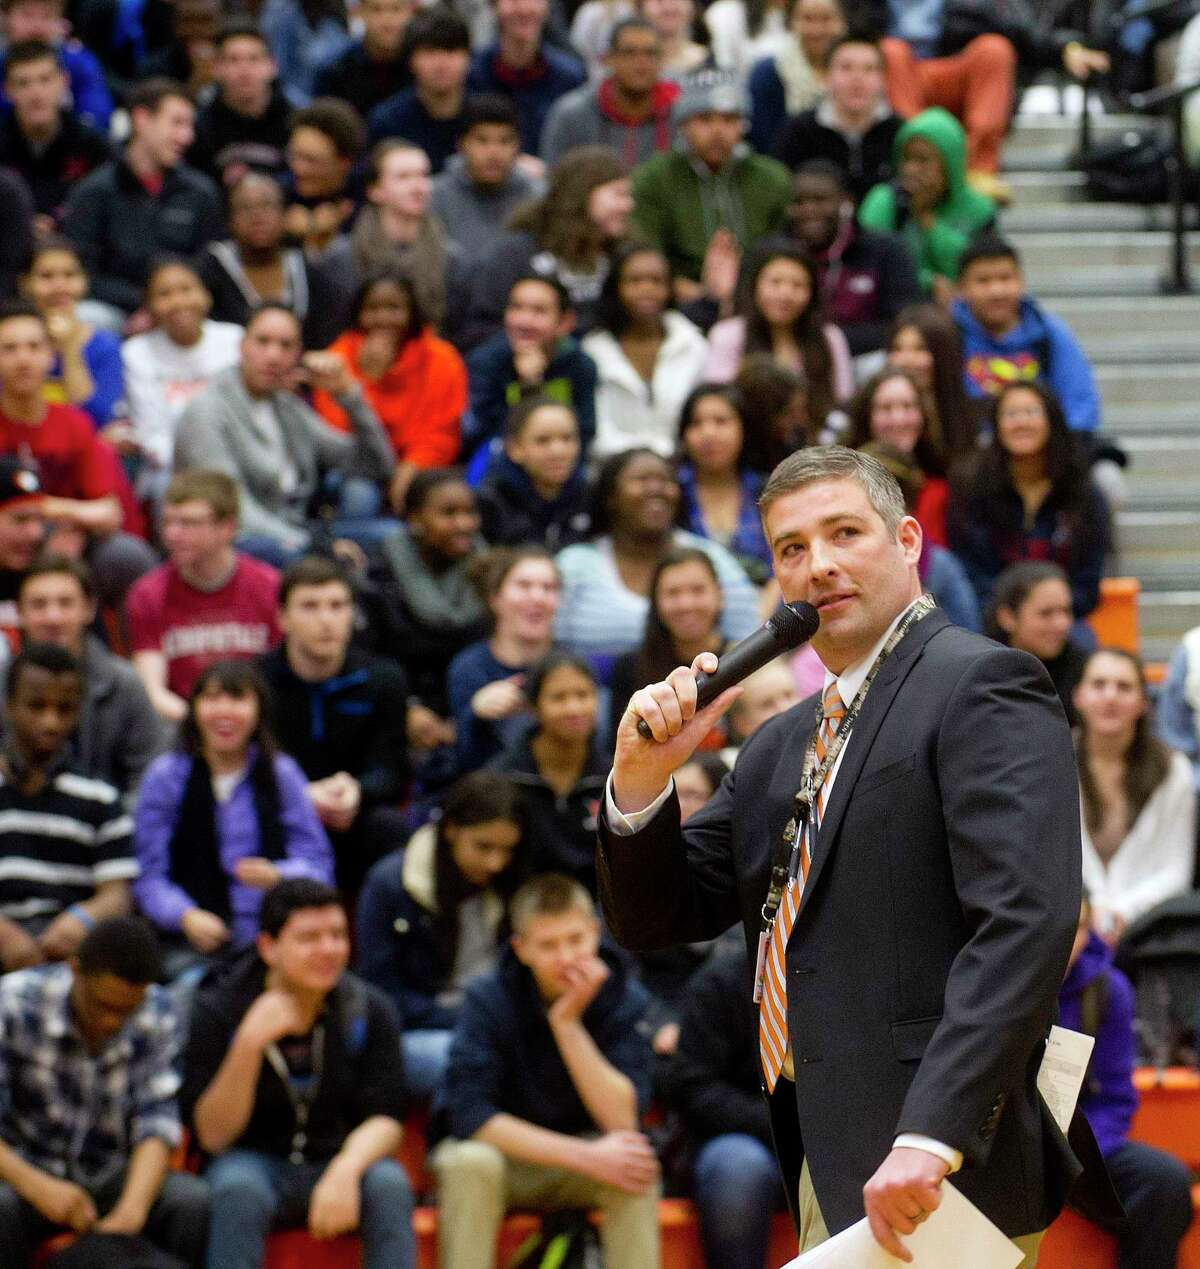 Then-assistant principal Matthew Forker speaks during an assembly aimed to increase school pride on Friday, February 20, 2015.